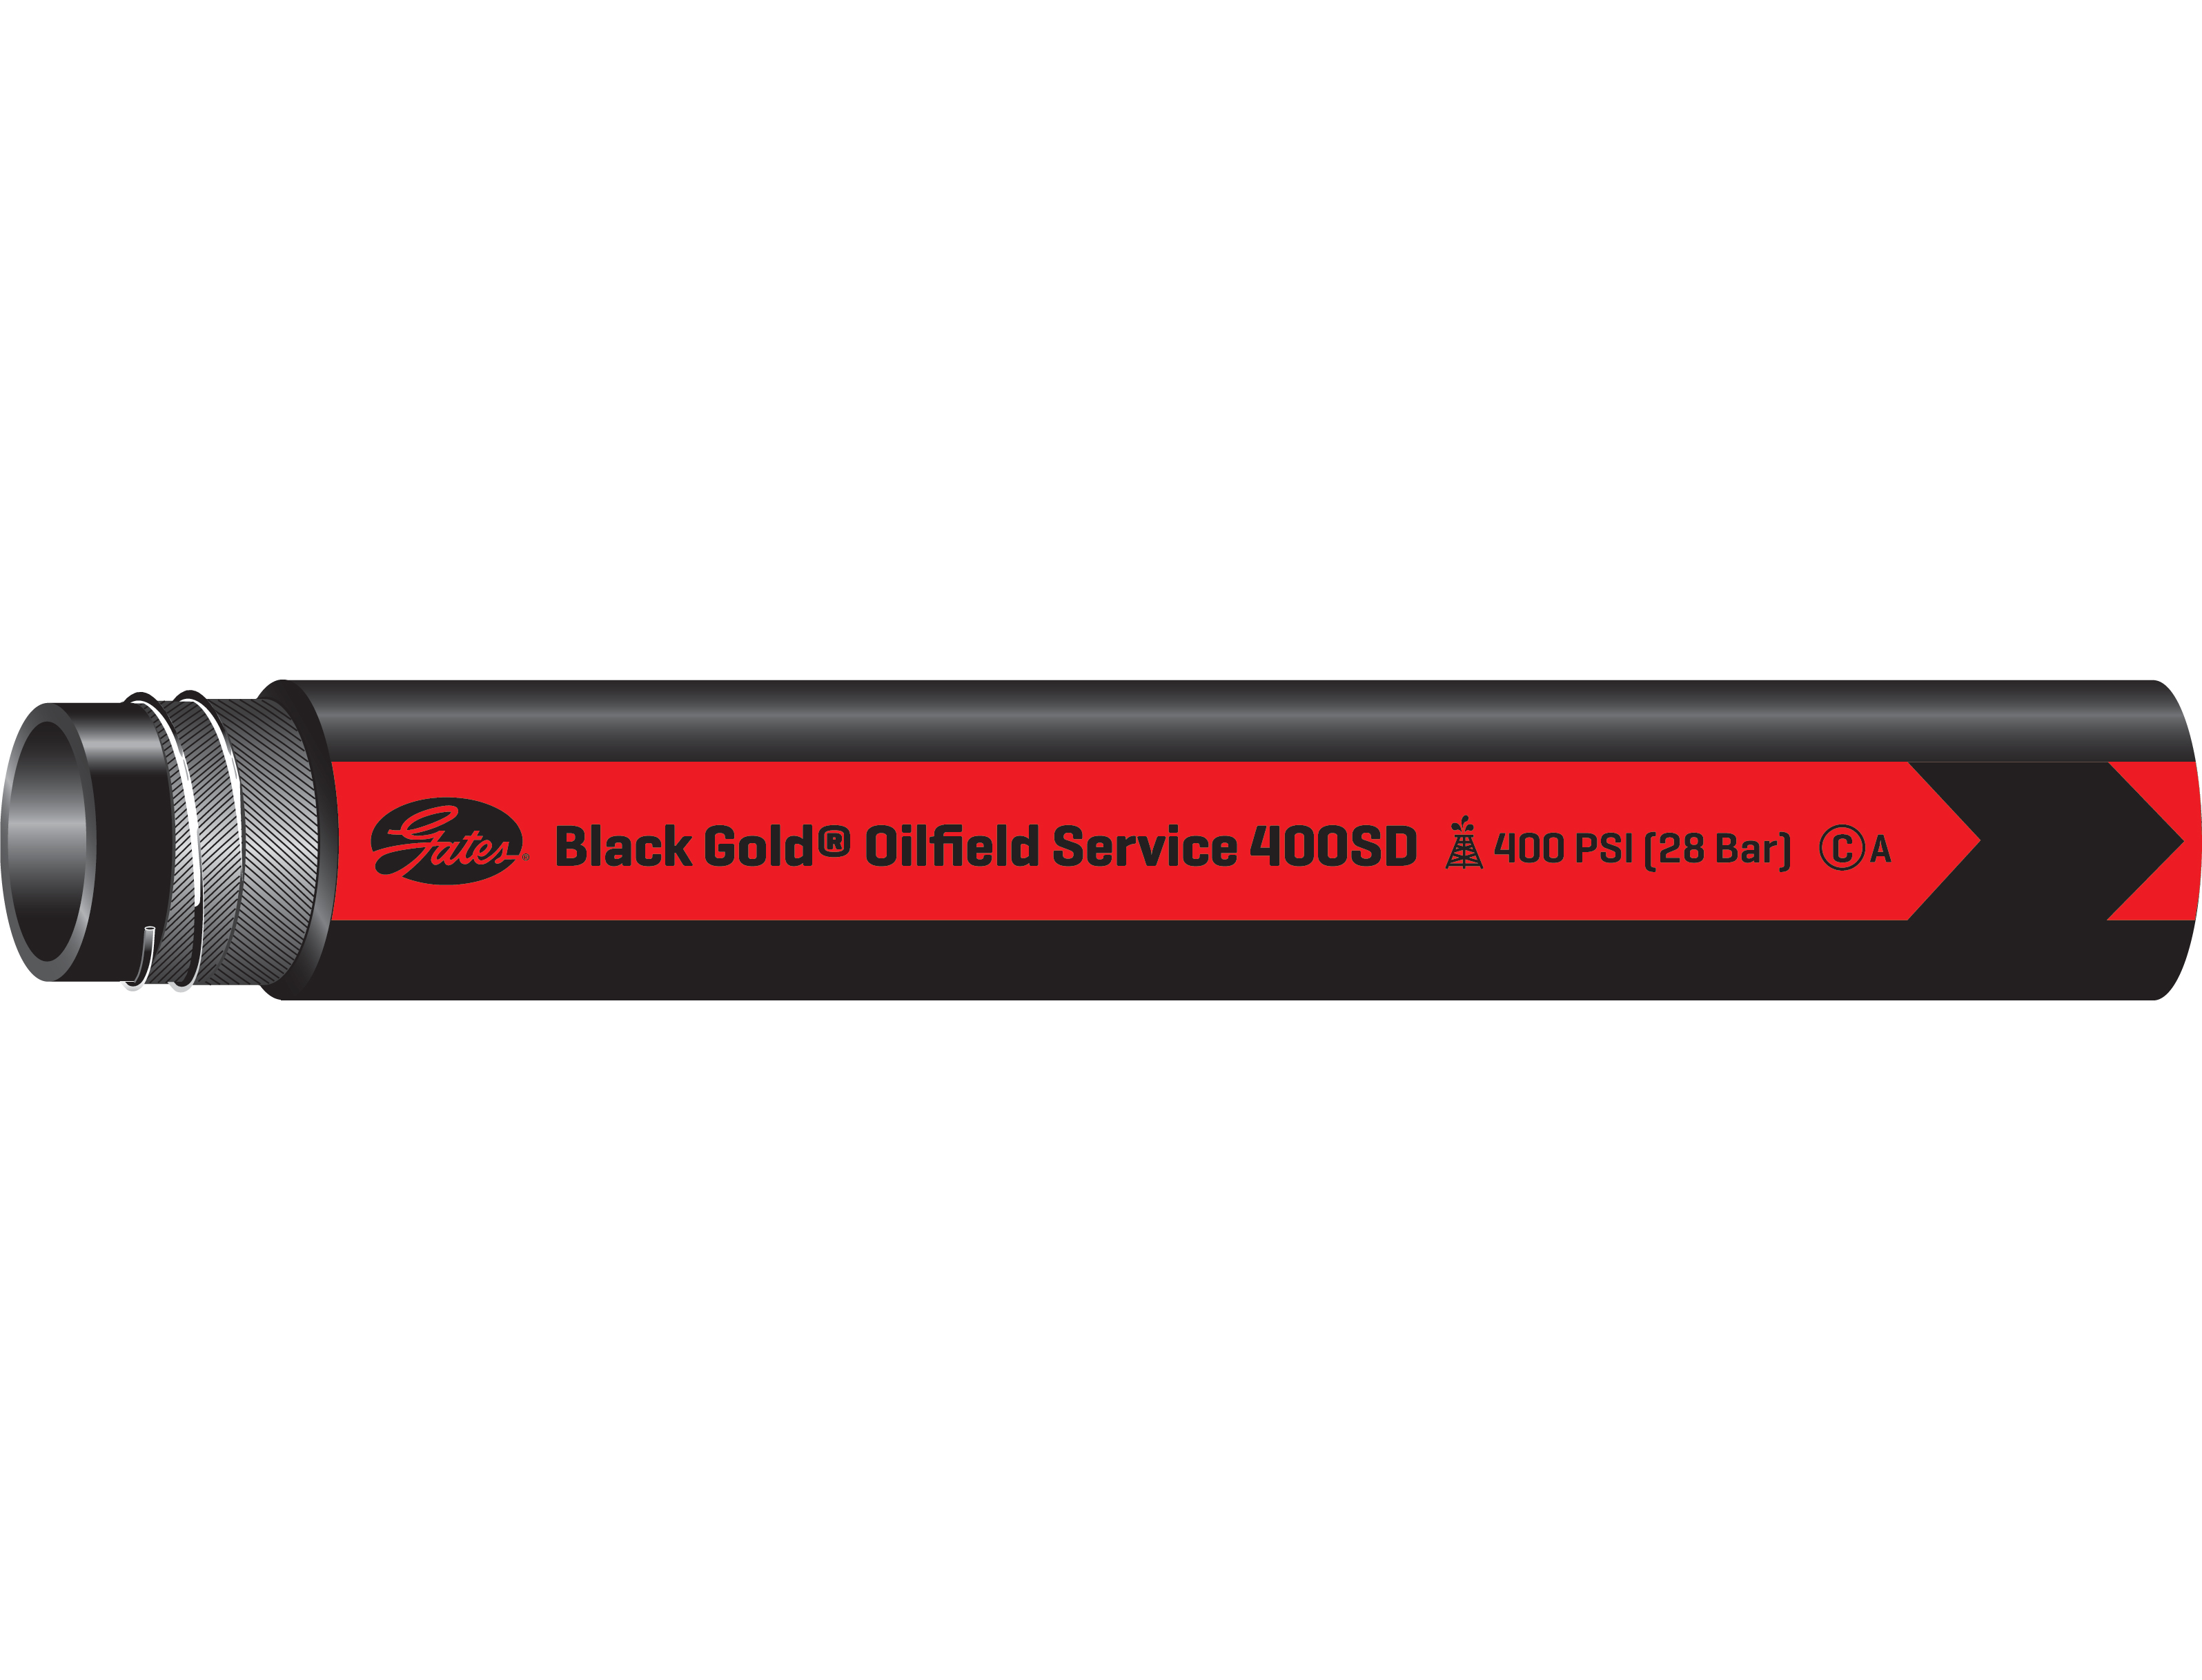 Black Gold Oilfield Service Suction & Discharge Hose